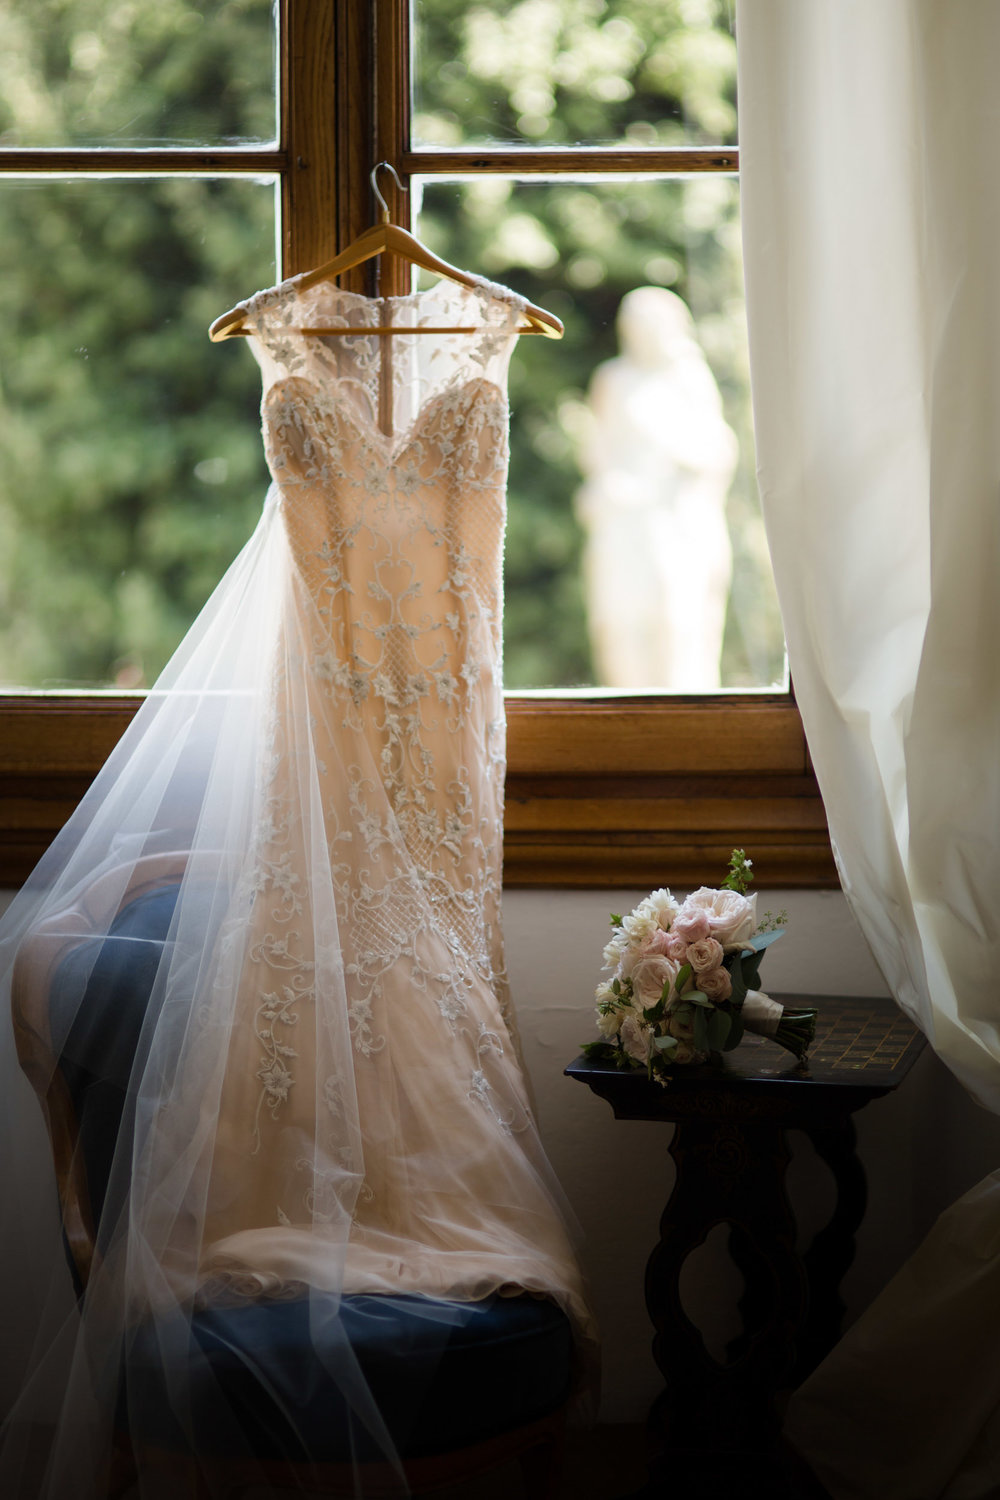 The blush bridal gown was a custom Monique Lhuillier for this Florence, Italy wedding.